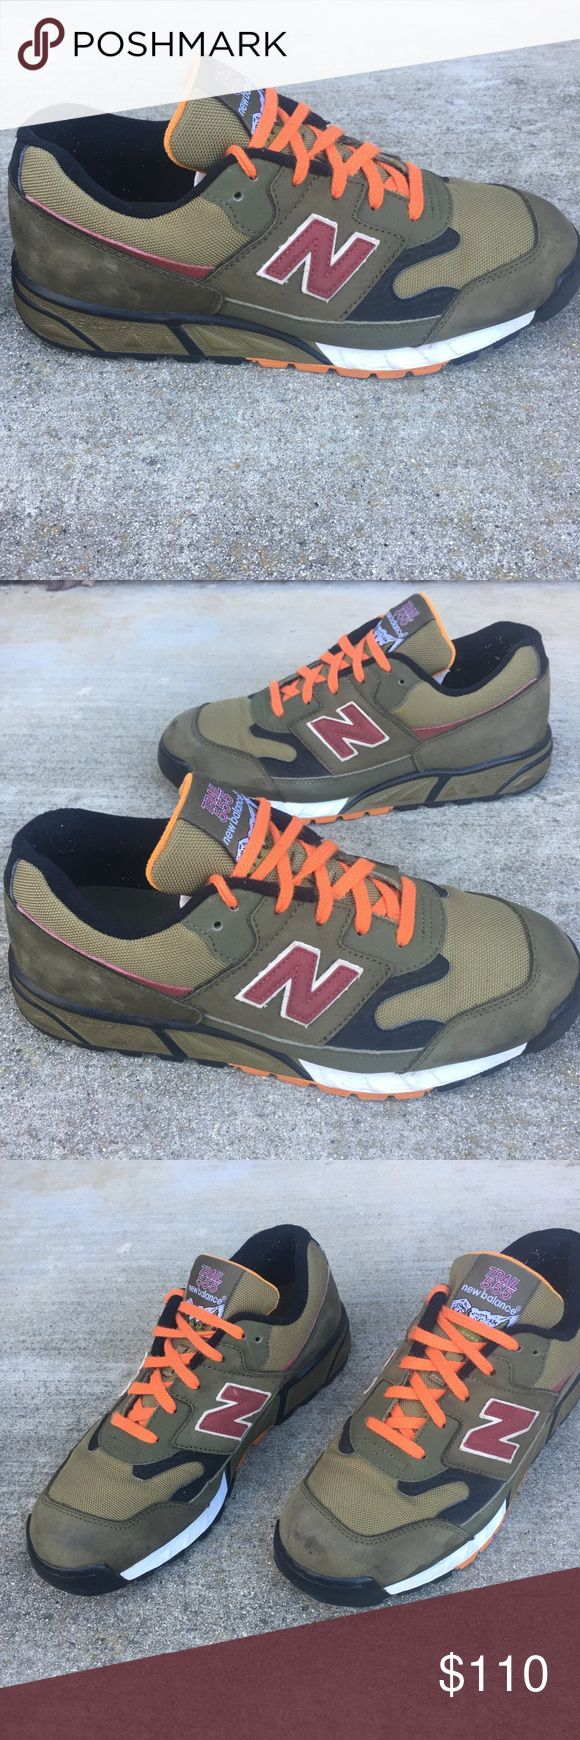 """New Balance 555 Trail MT555OR   Suede  Olive New Balance 555 Trail MT555OR  Multi  Olive Green Brown  Synthetic Suede          Heel Height: 1 1/4  """" Width:4 1/4 """" Very good pre-owned condition.  Shoes show some wear from normal used and minor scuff on left shoe (see last pic).  Please view all photos for details carefully before purchase. These are part of the description and contact if you have further questions. We washed, scrubbed, cleaned, and disinfected before list for sale.  From pet…"""